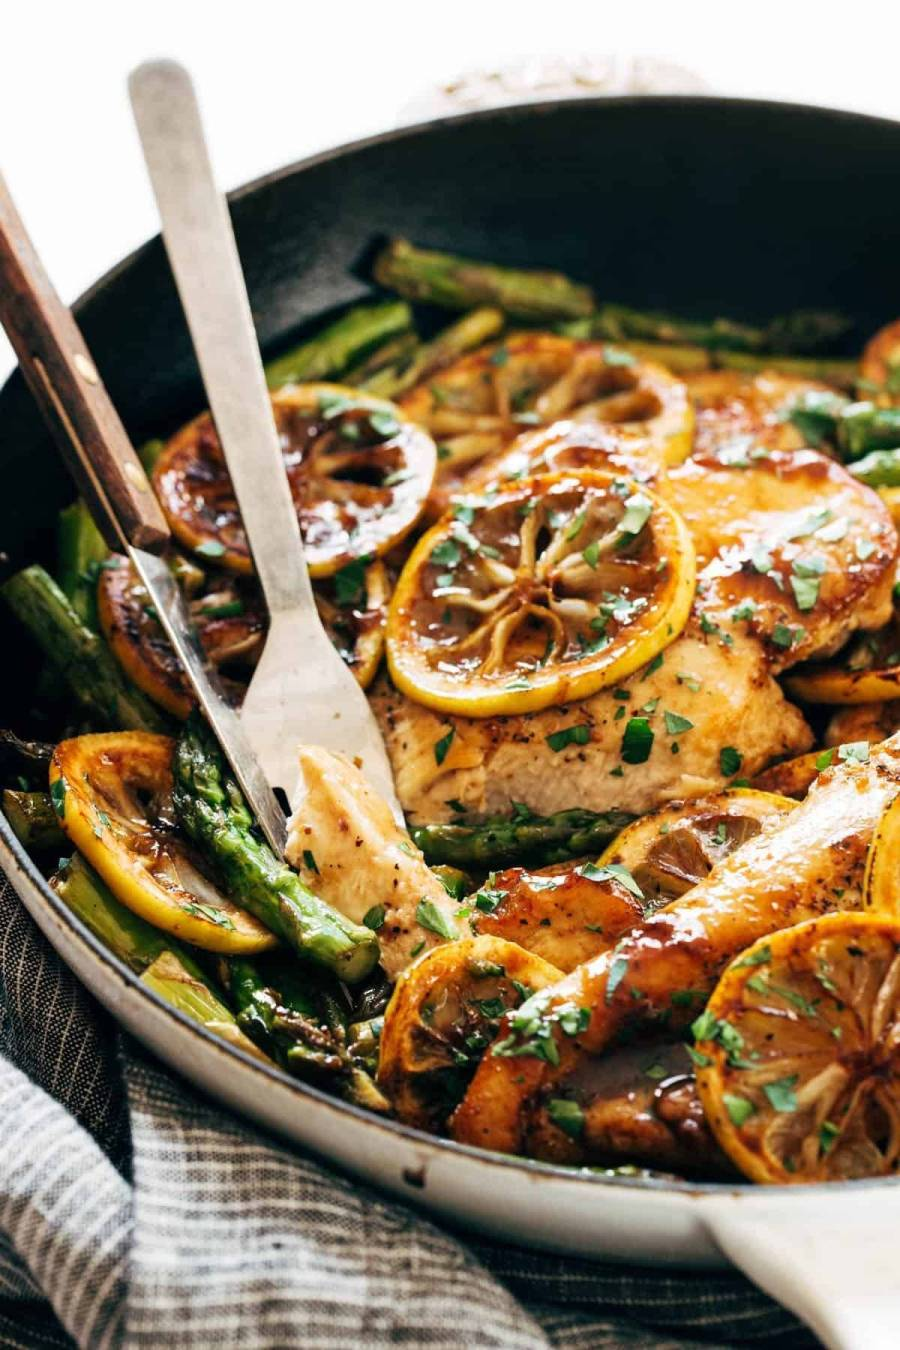 Lemon chicken with asparagus in a pan with a fork